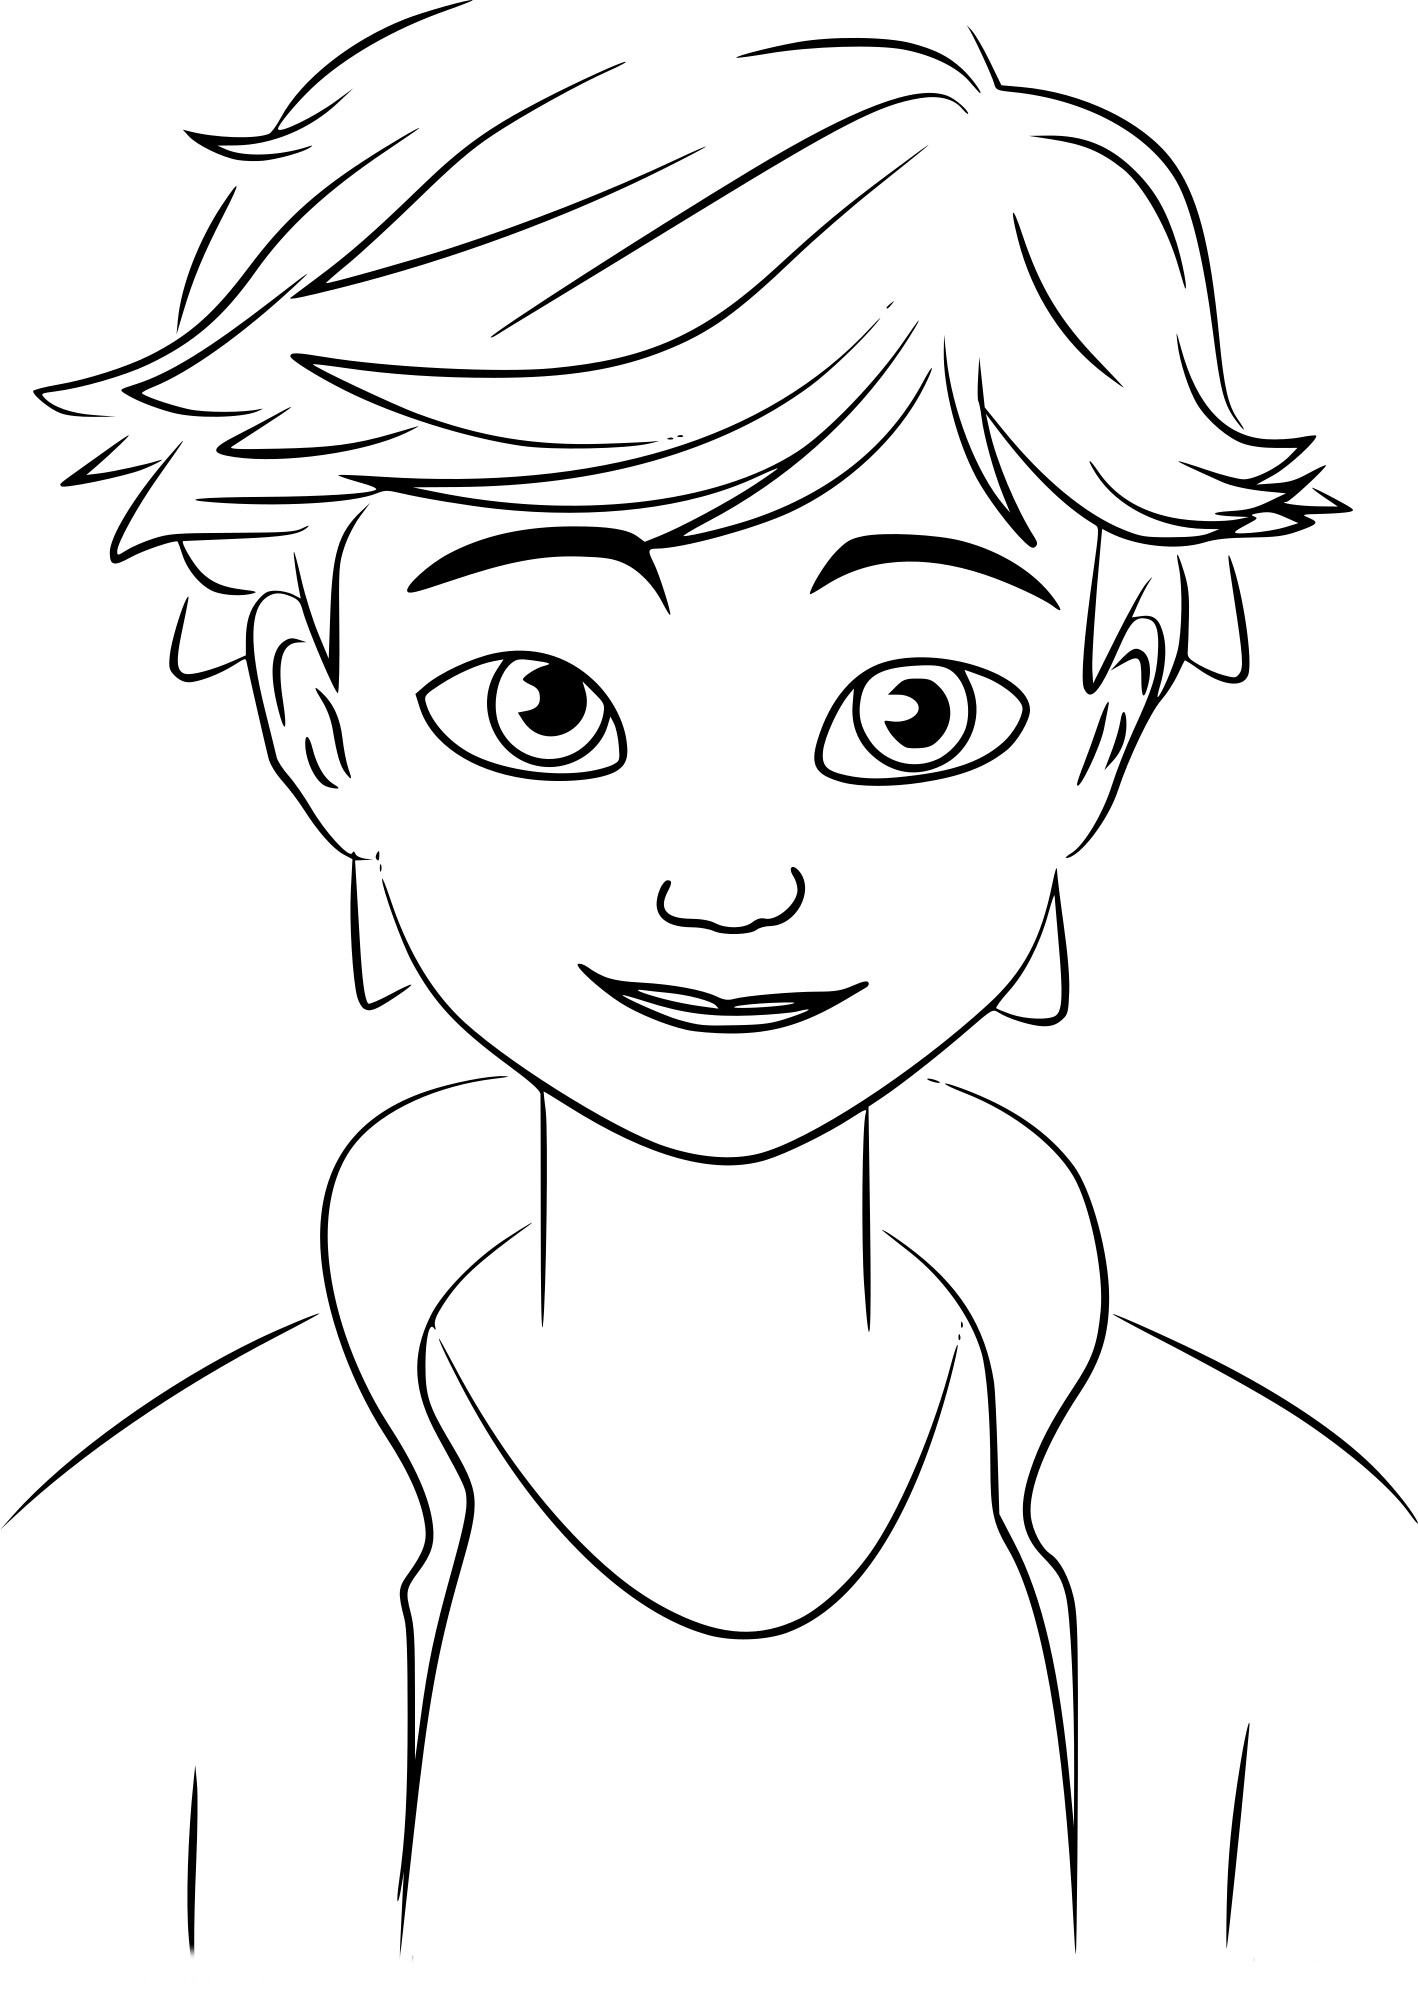 Miraculous Coloring Pages At Getdrawings | Free Download destiné Coloriage Lady Bug